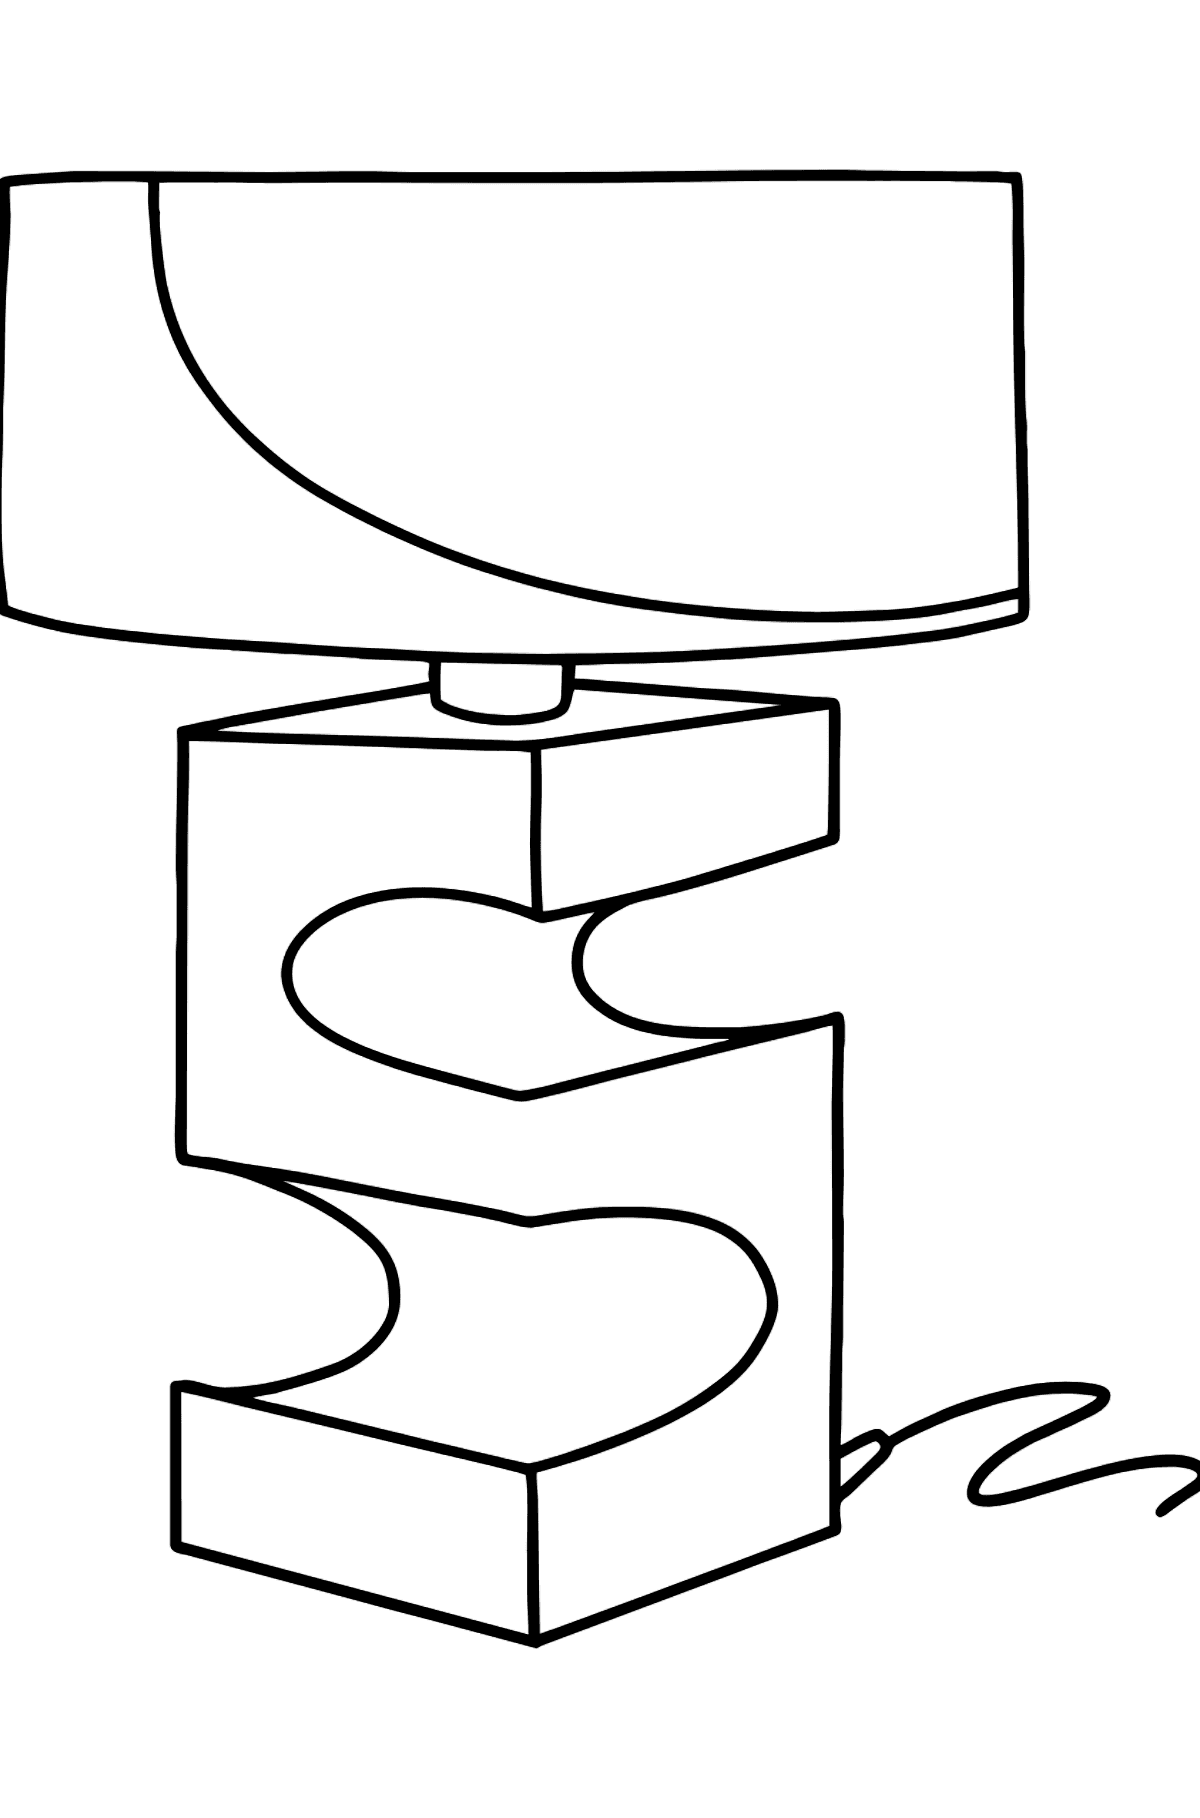 Designer Lamp coloring page - Coloring Pages for Kids